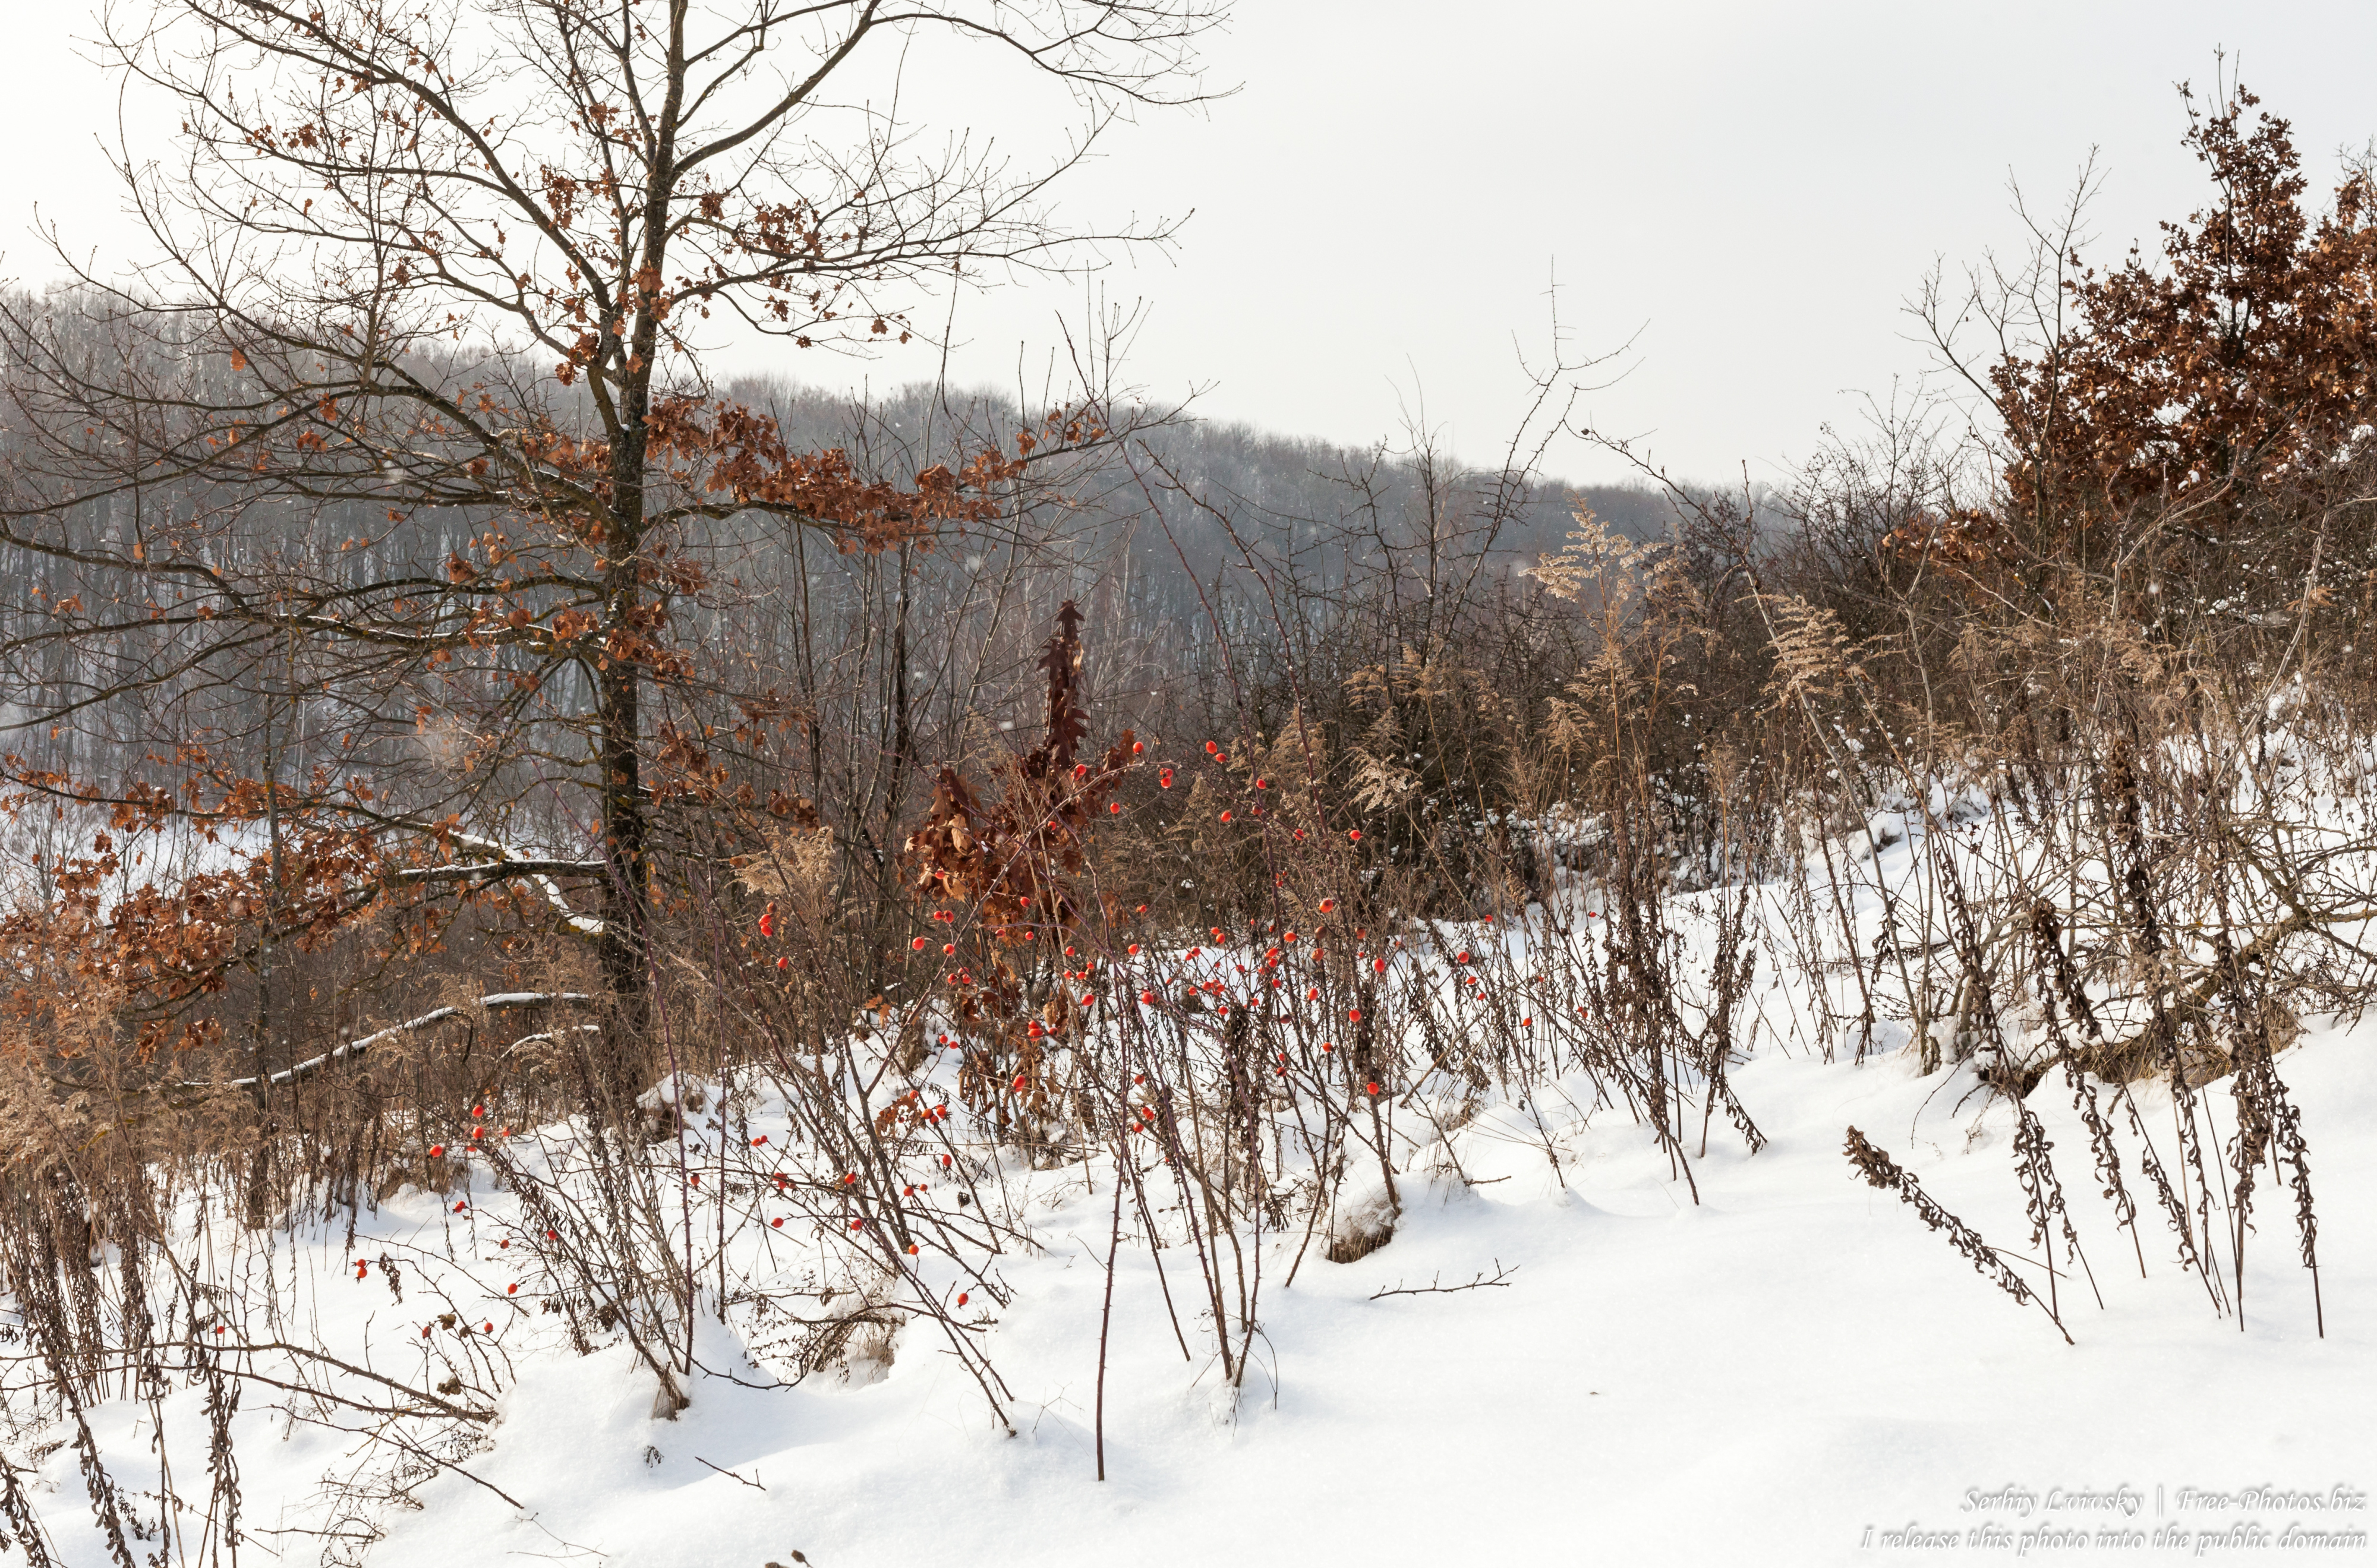 nature_in_rivne_region_of_ukraine_photographed_by_serhiy_lvivsky_in_january_2019_02